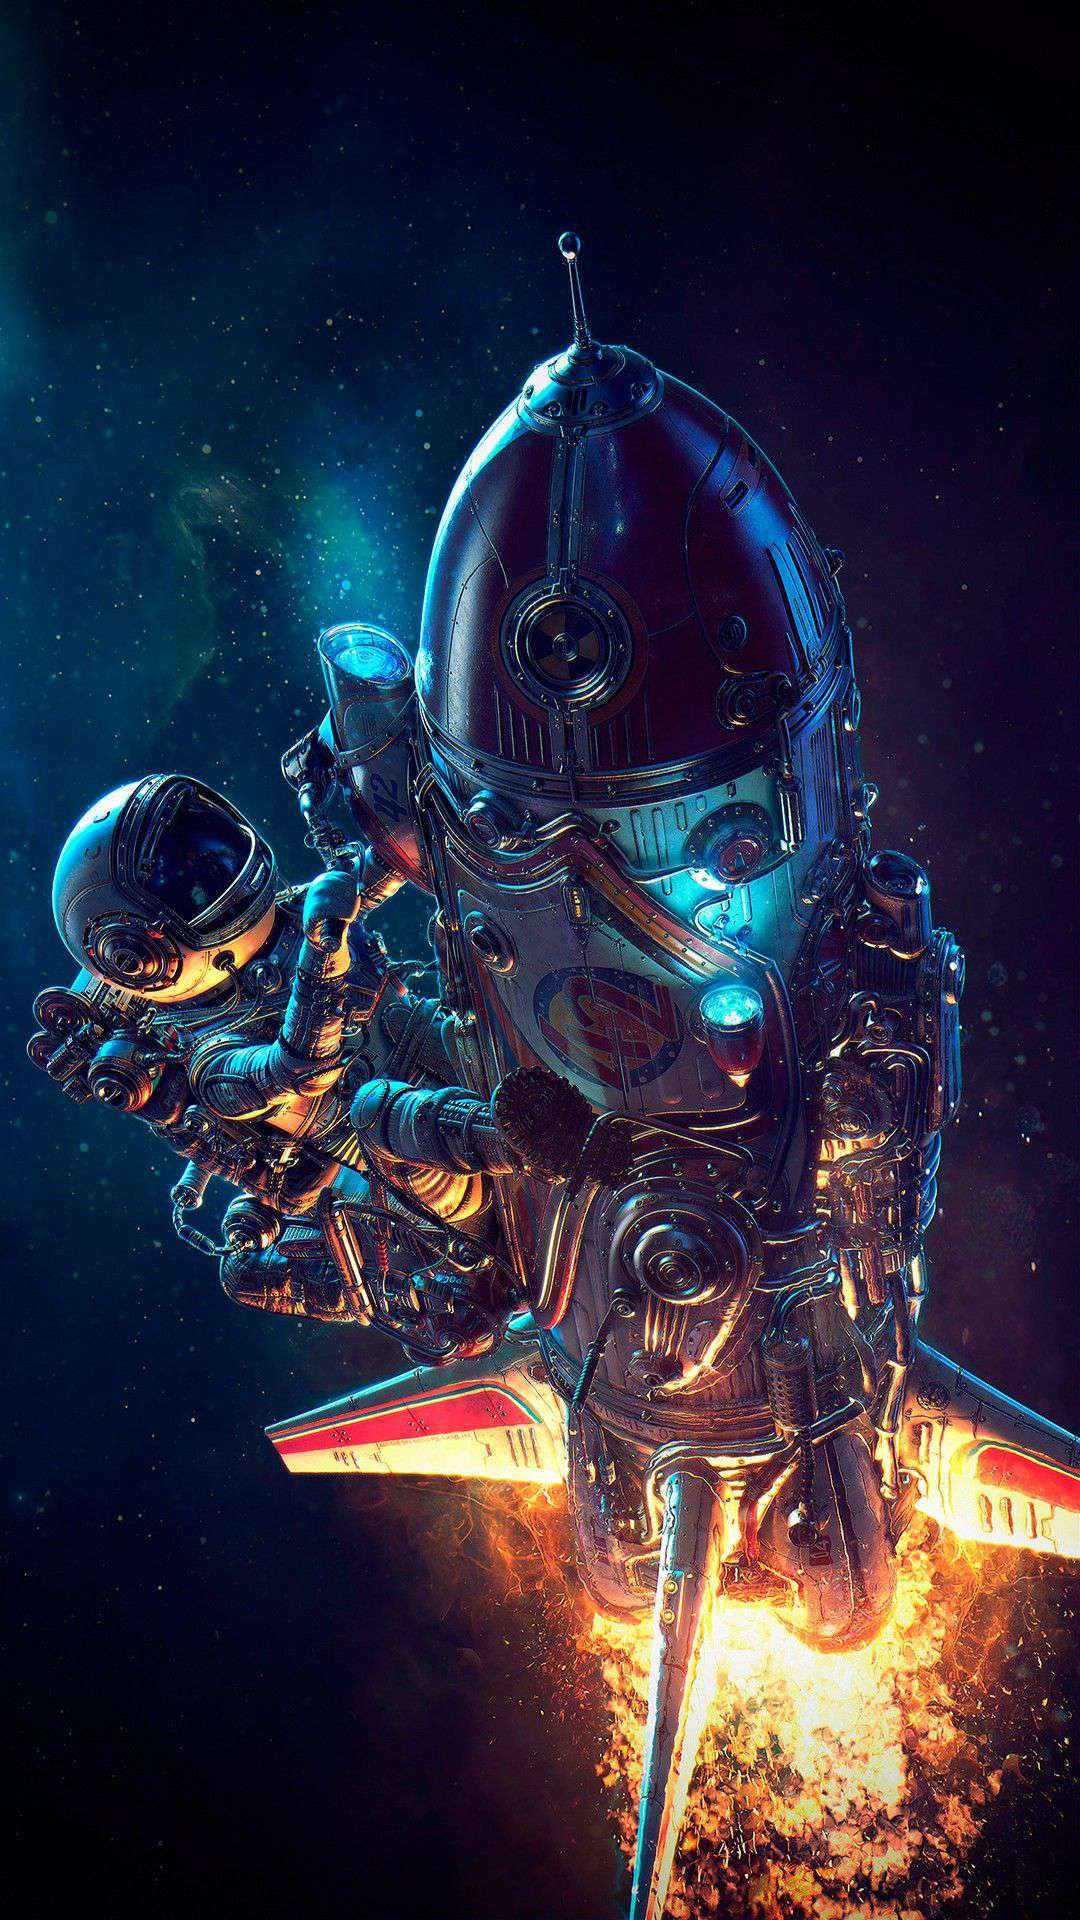 Download This Wallpaper Preview - Space Astronaut Wallpaper For Iphone , HD Wallpaper & Backgrounds